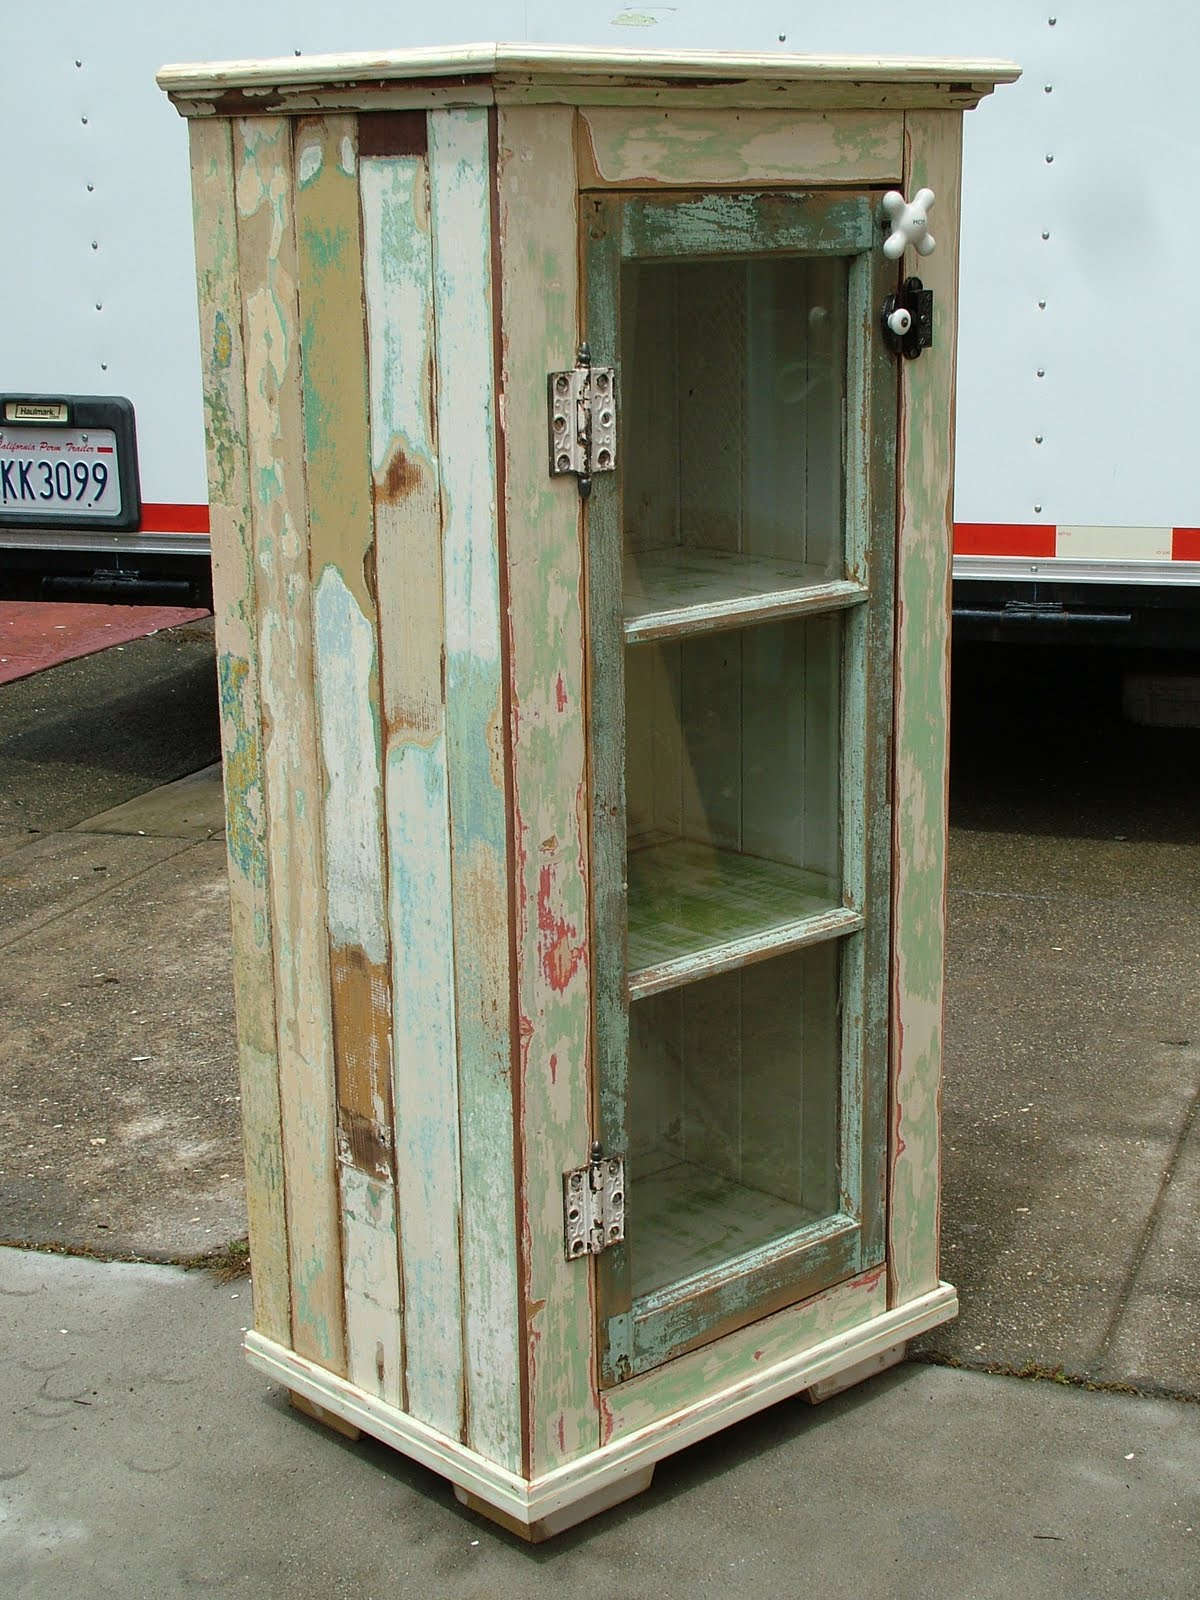 Bryan appleton designs april 2010 - Cabinet made from old doors ...